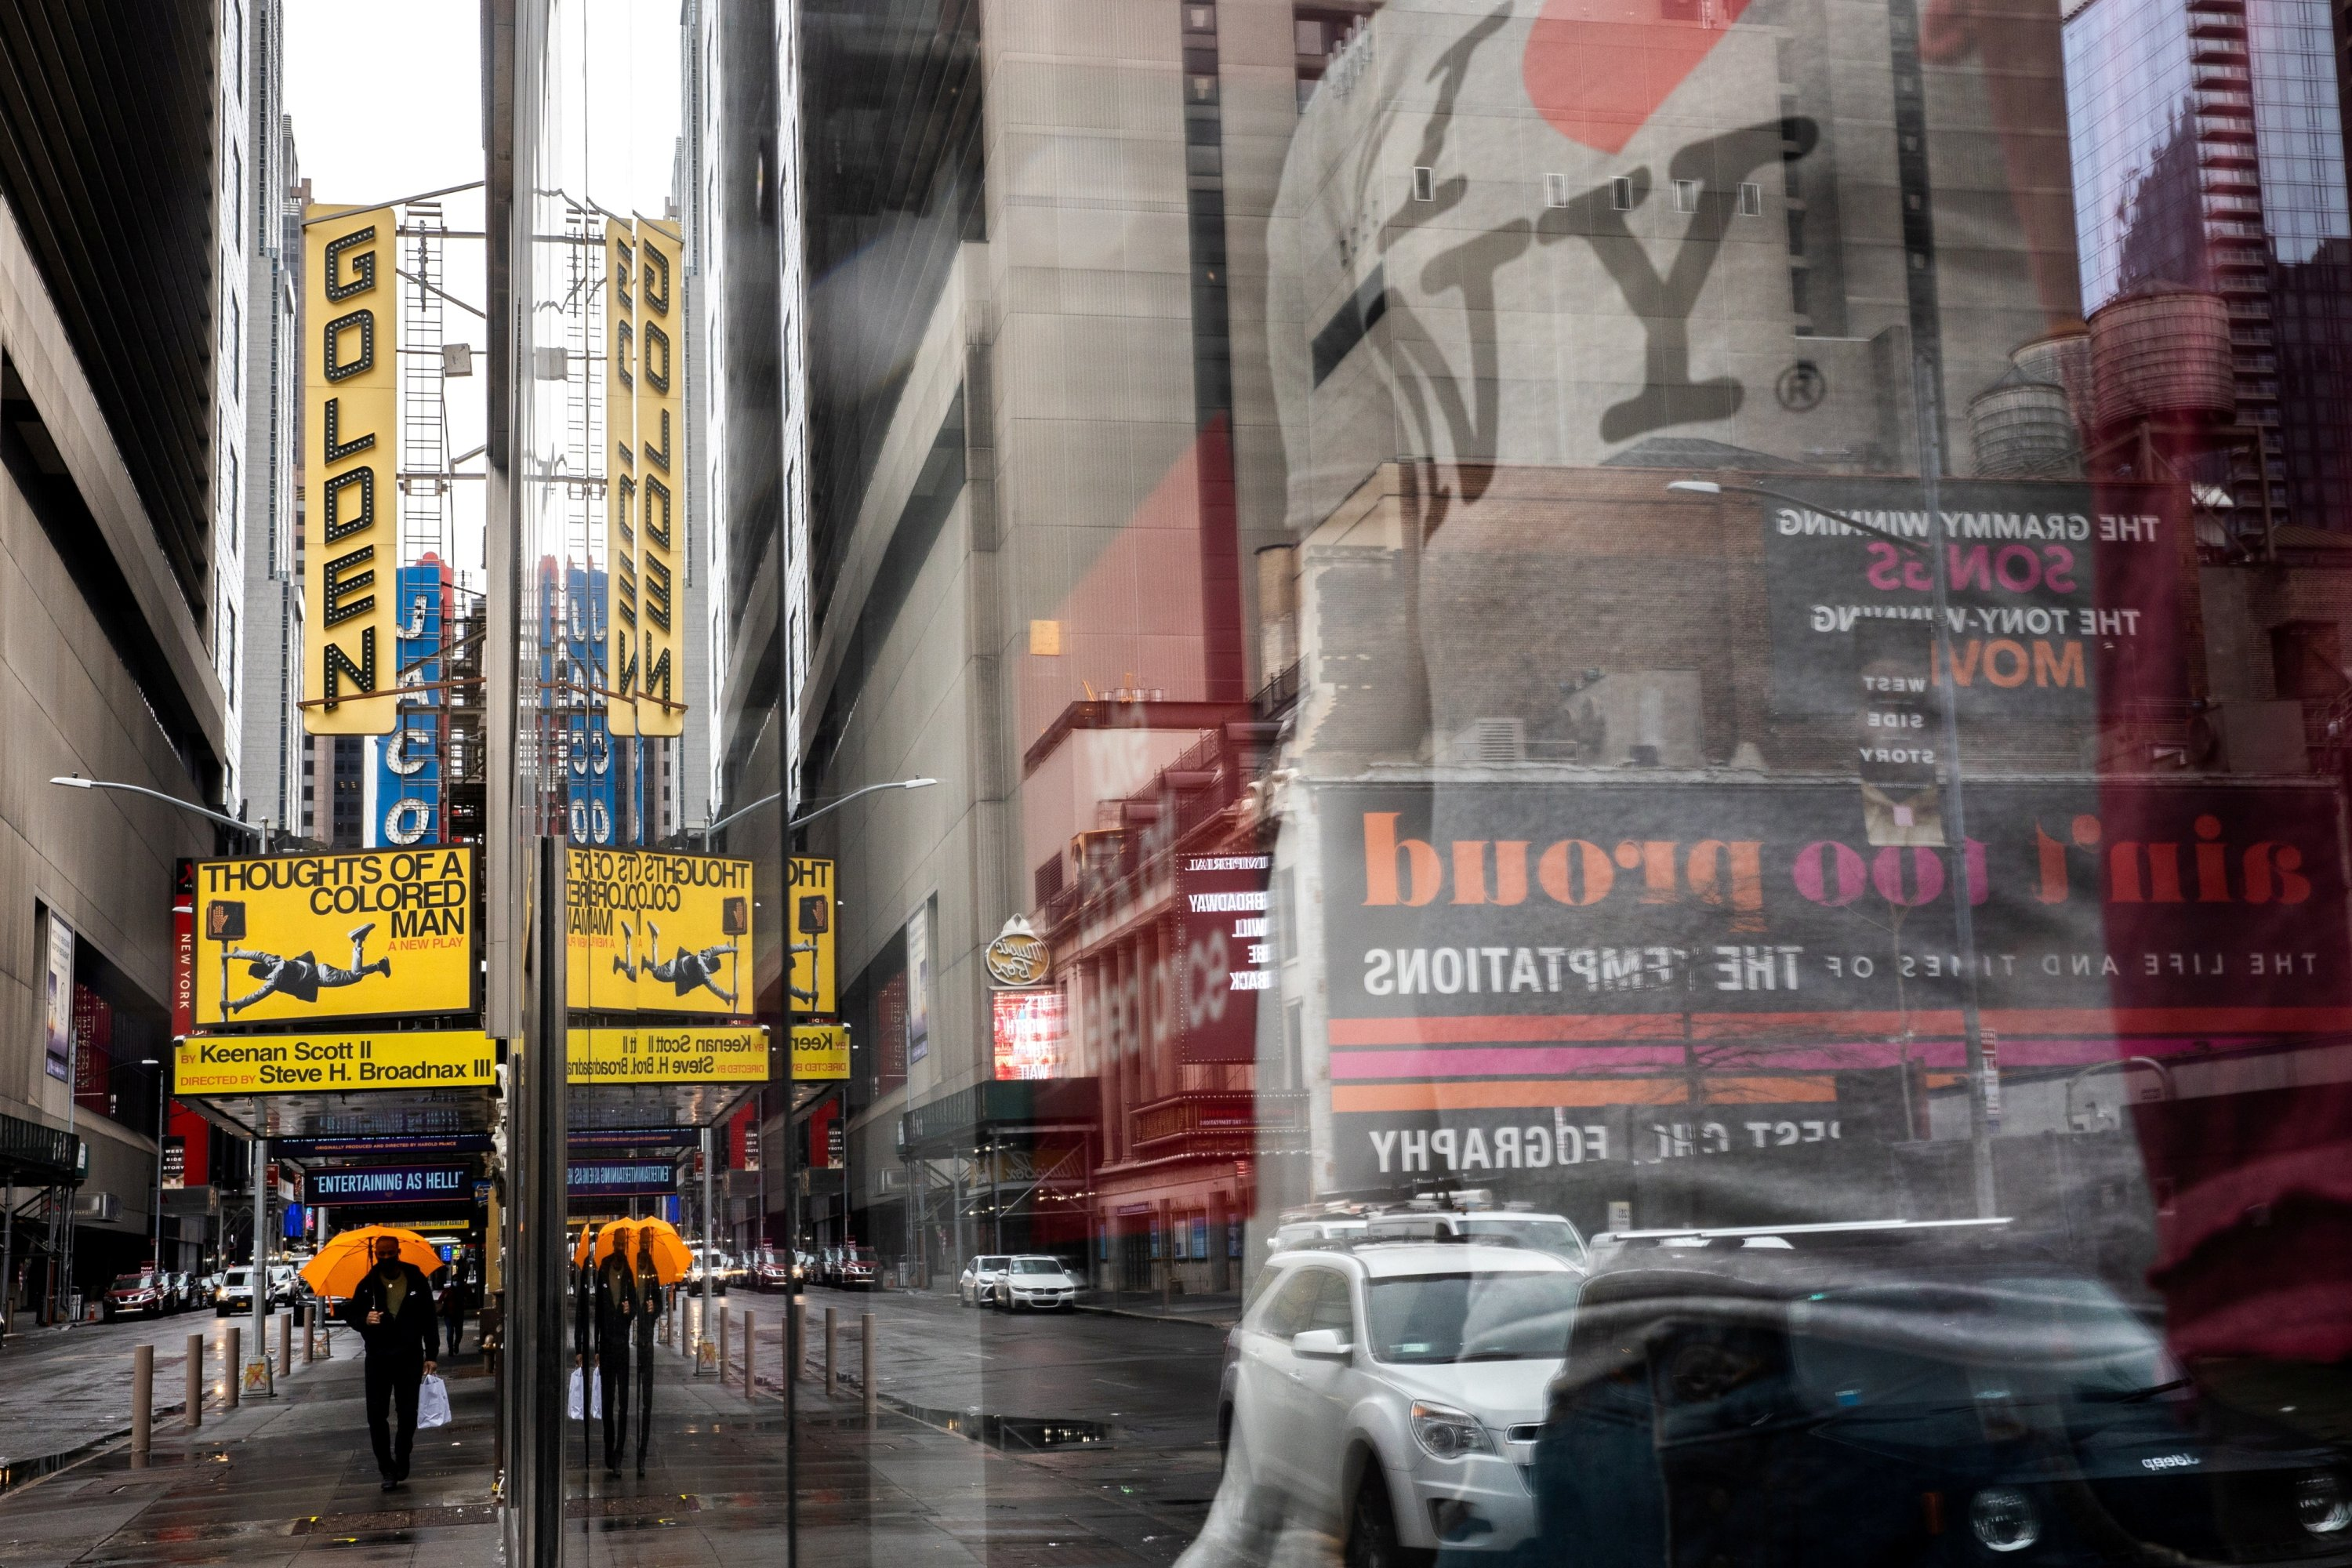 A man walks outside the shuttered John Golden Theatre amid the COVID-19 pandemic in New York City, U.S., April 12, 2021. (Reuters Photo)